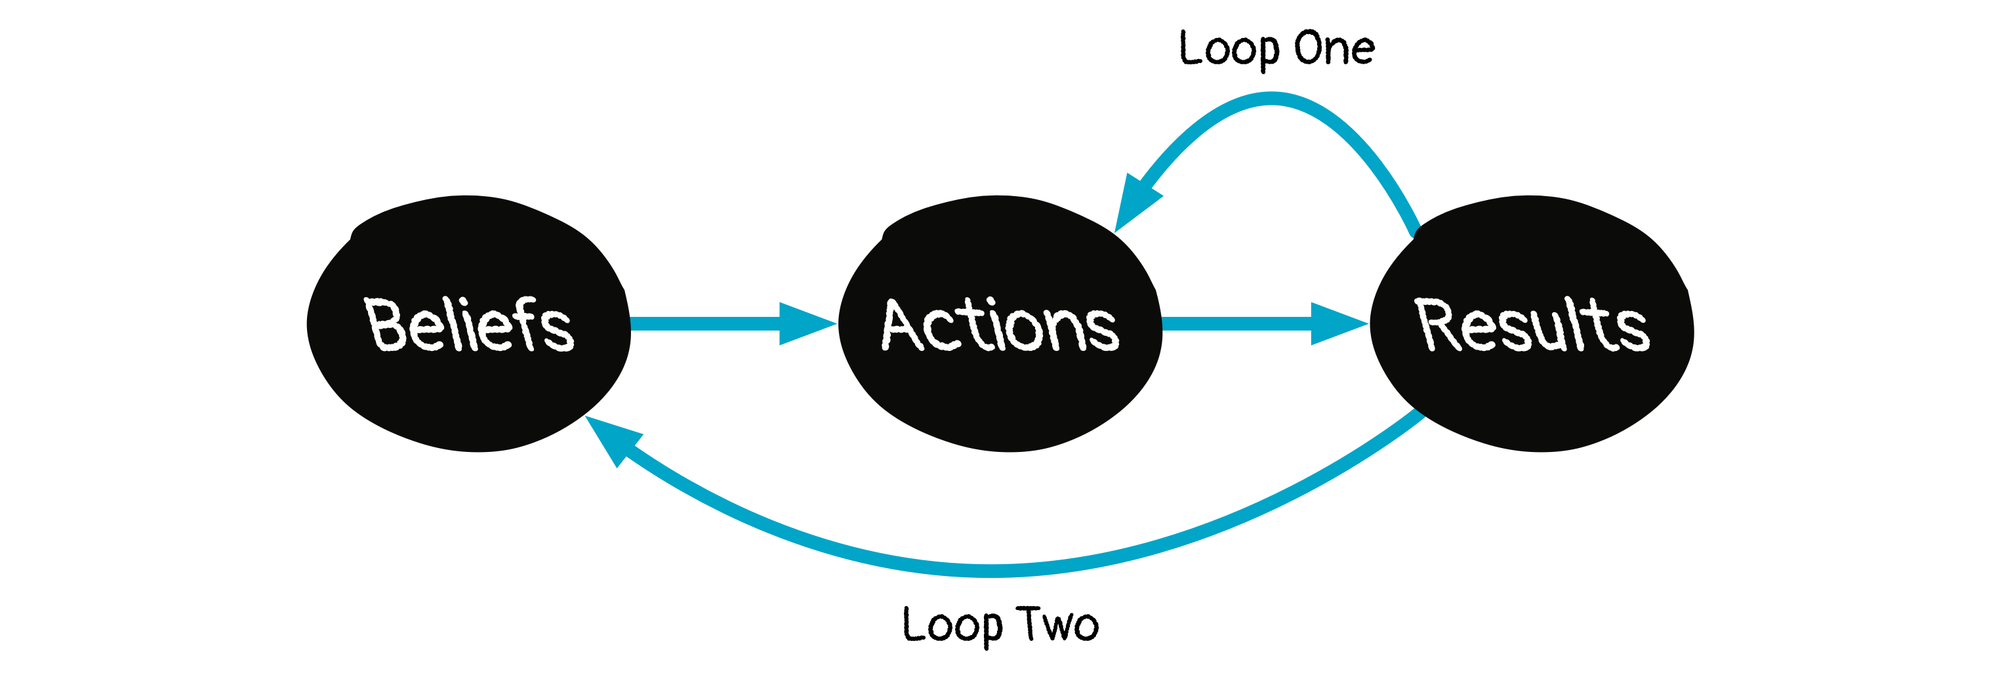 A loop showing Beliefs leading to Actions leading to Results. Loop 1 leads back to Actions, Loop 2 leads back to Beliefs.